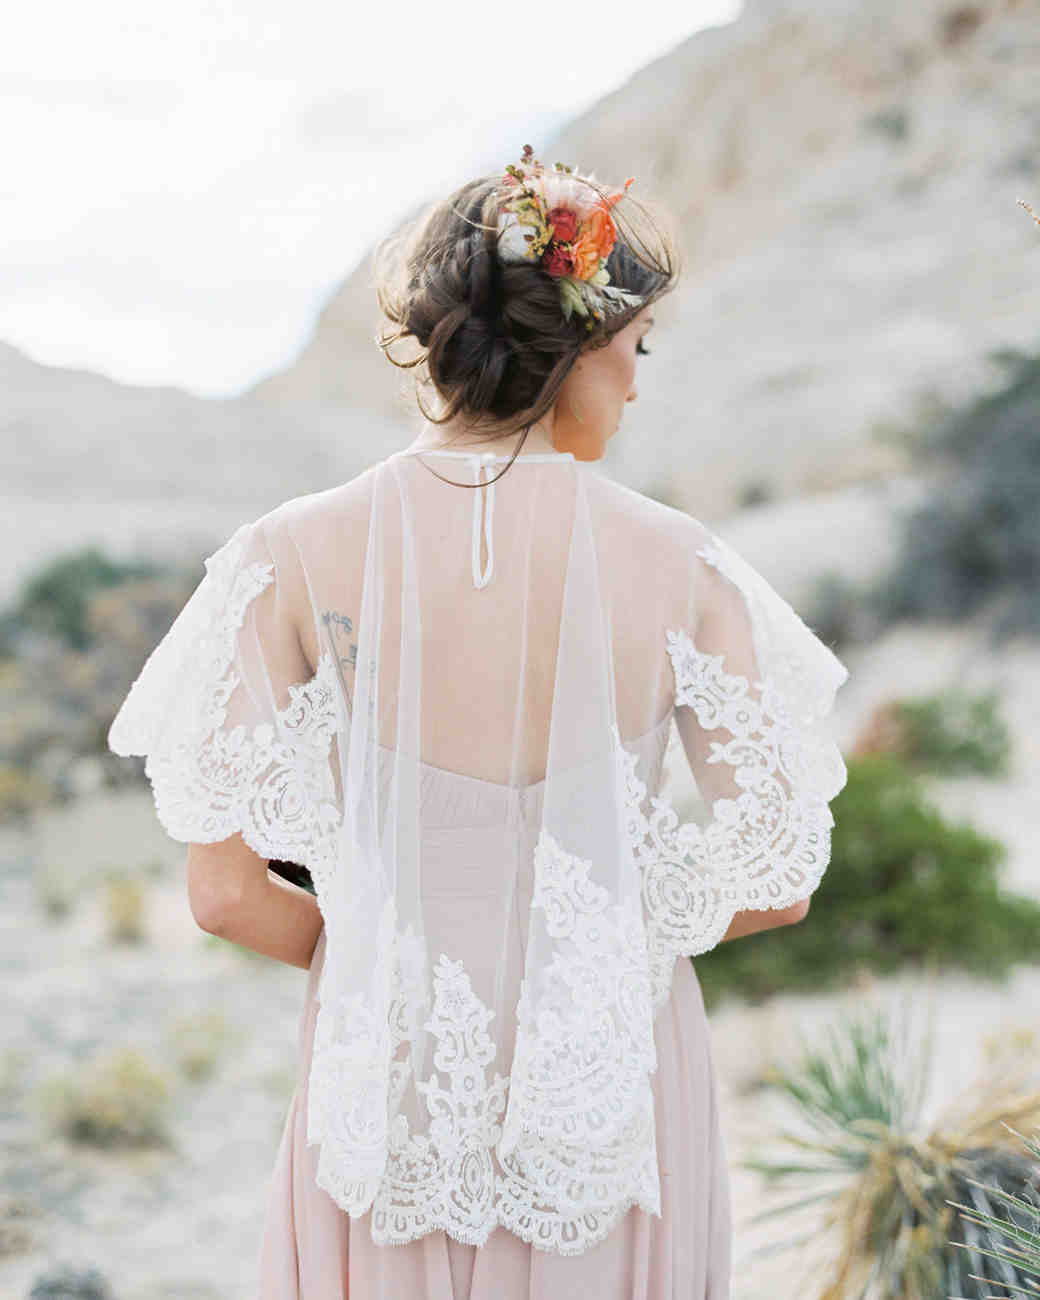 capelet with lace